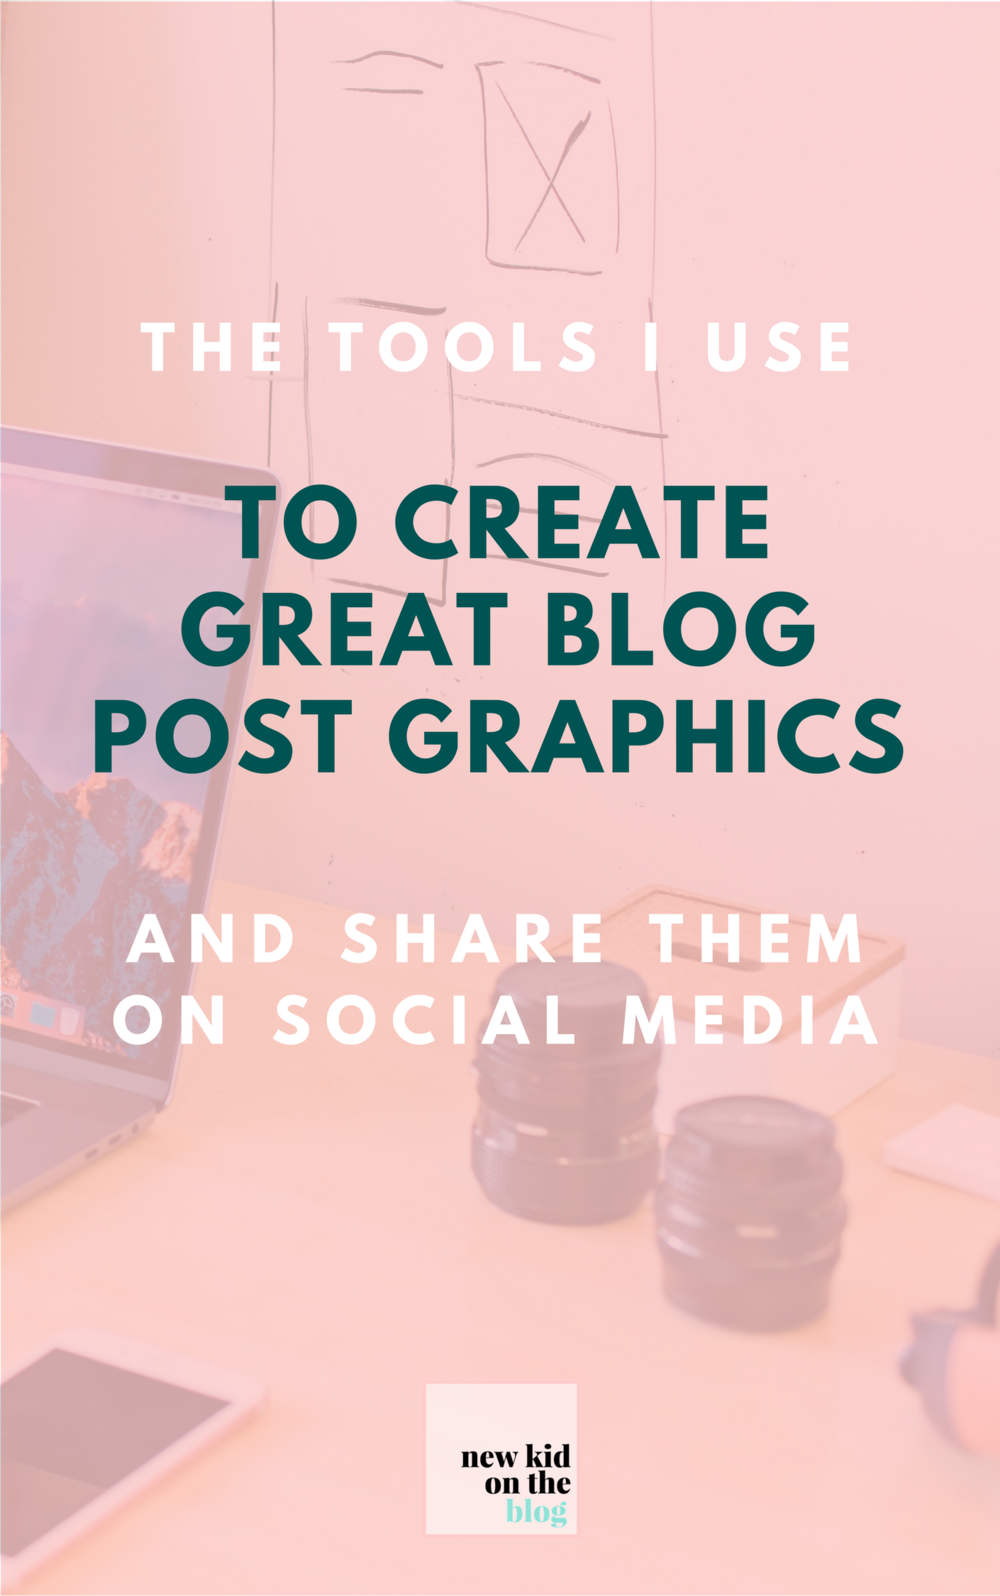 The tools I use to create great blog post graphics and share them on social media.png